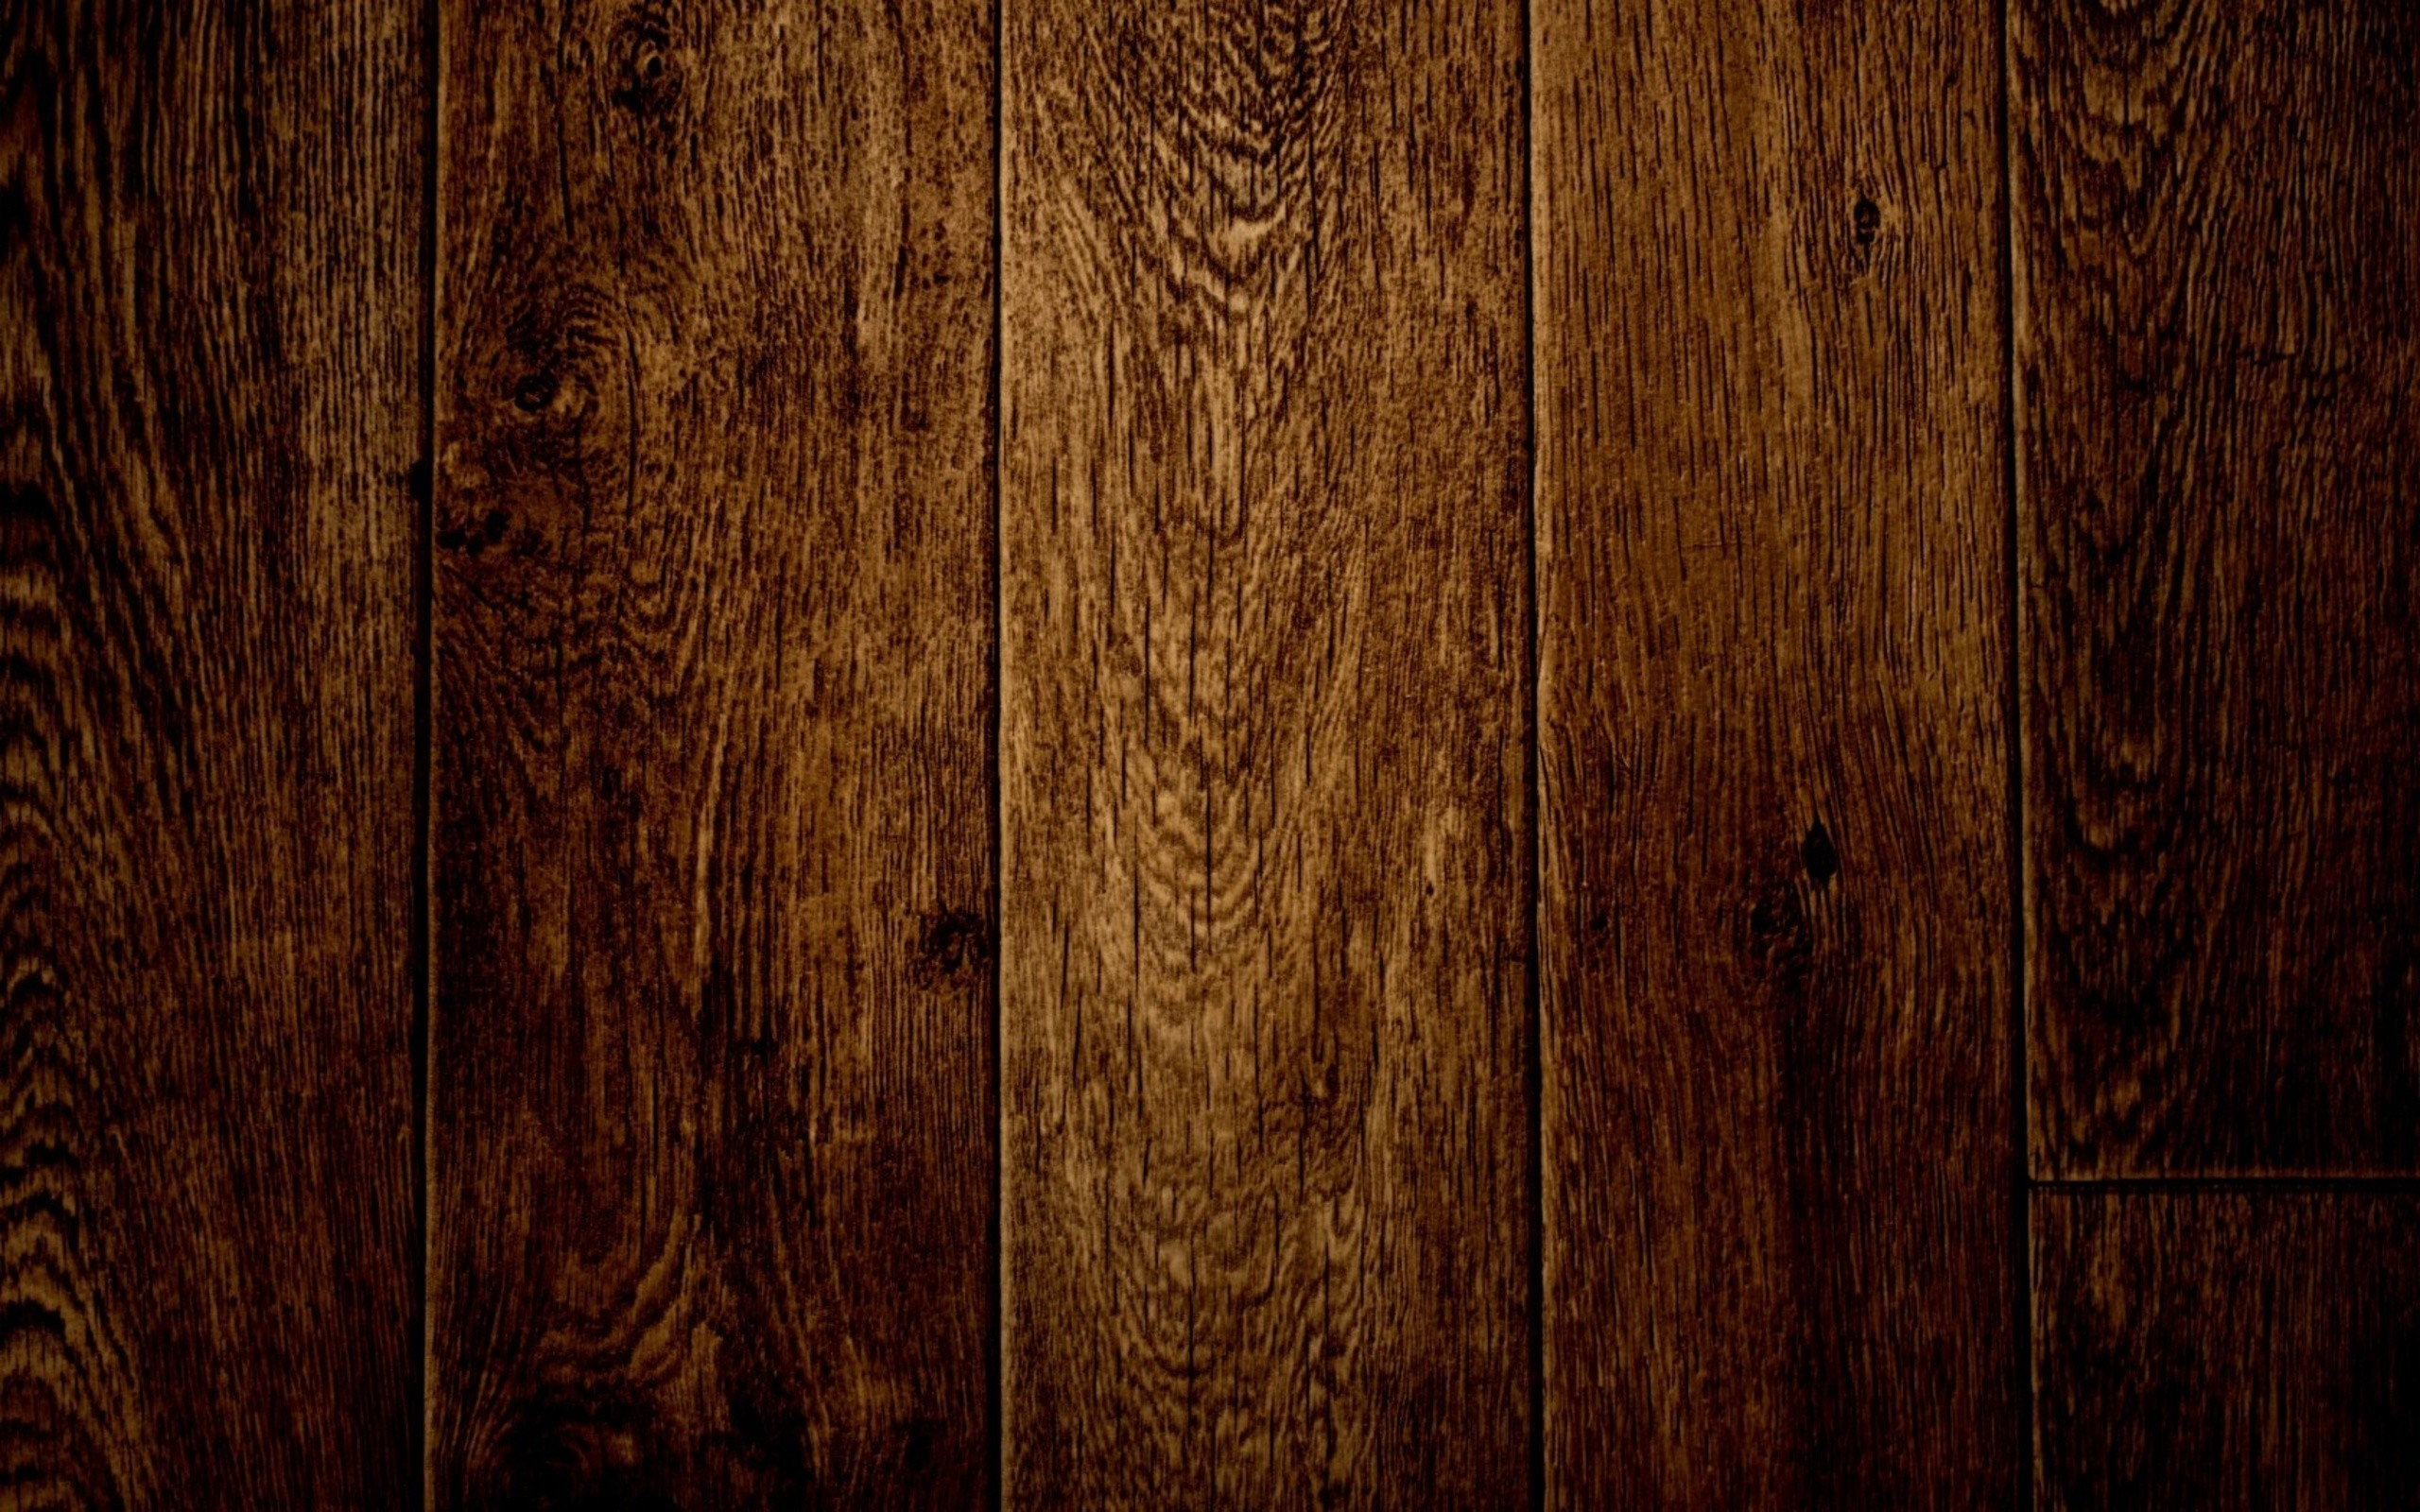 2560x1600 Wood Pattern Wallpapers Wallpapers) – Wallpapers and Backgrounds